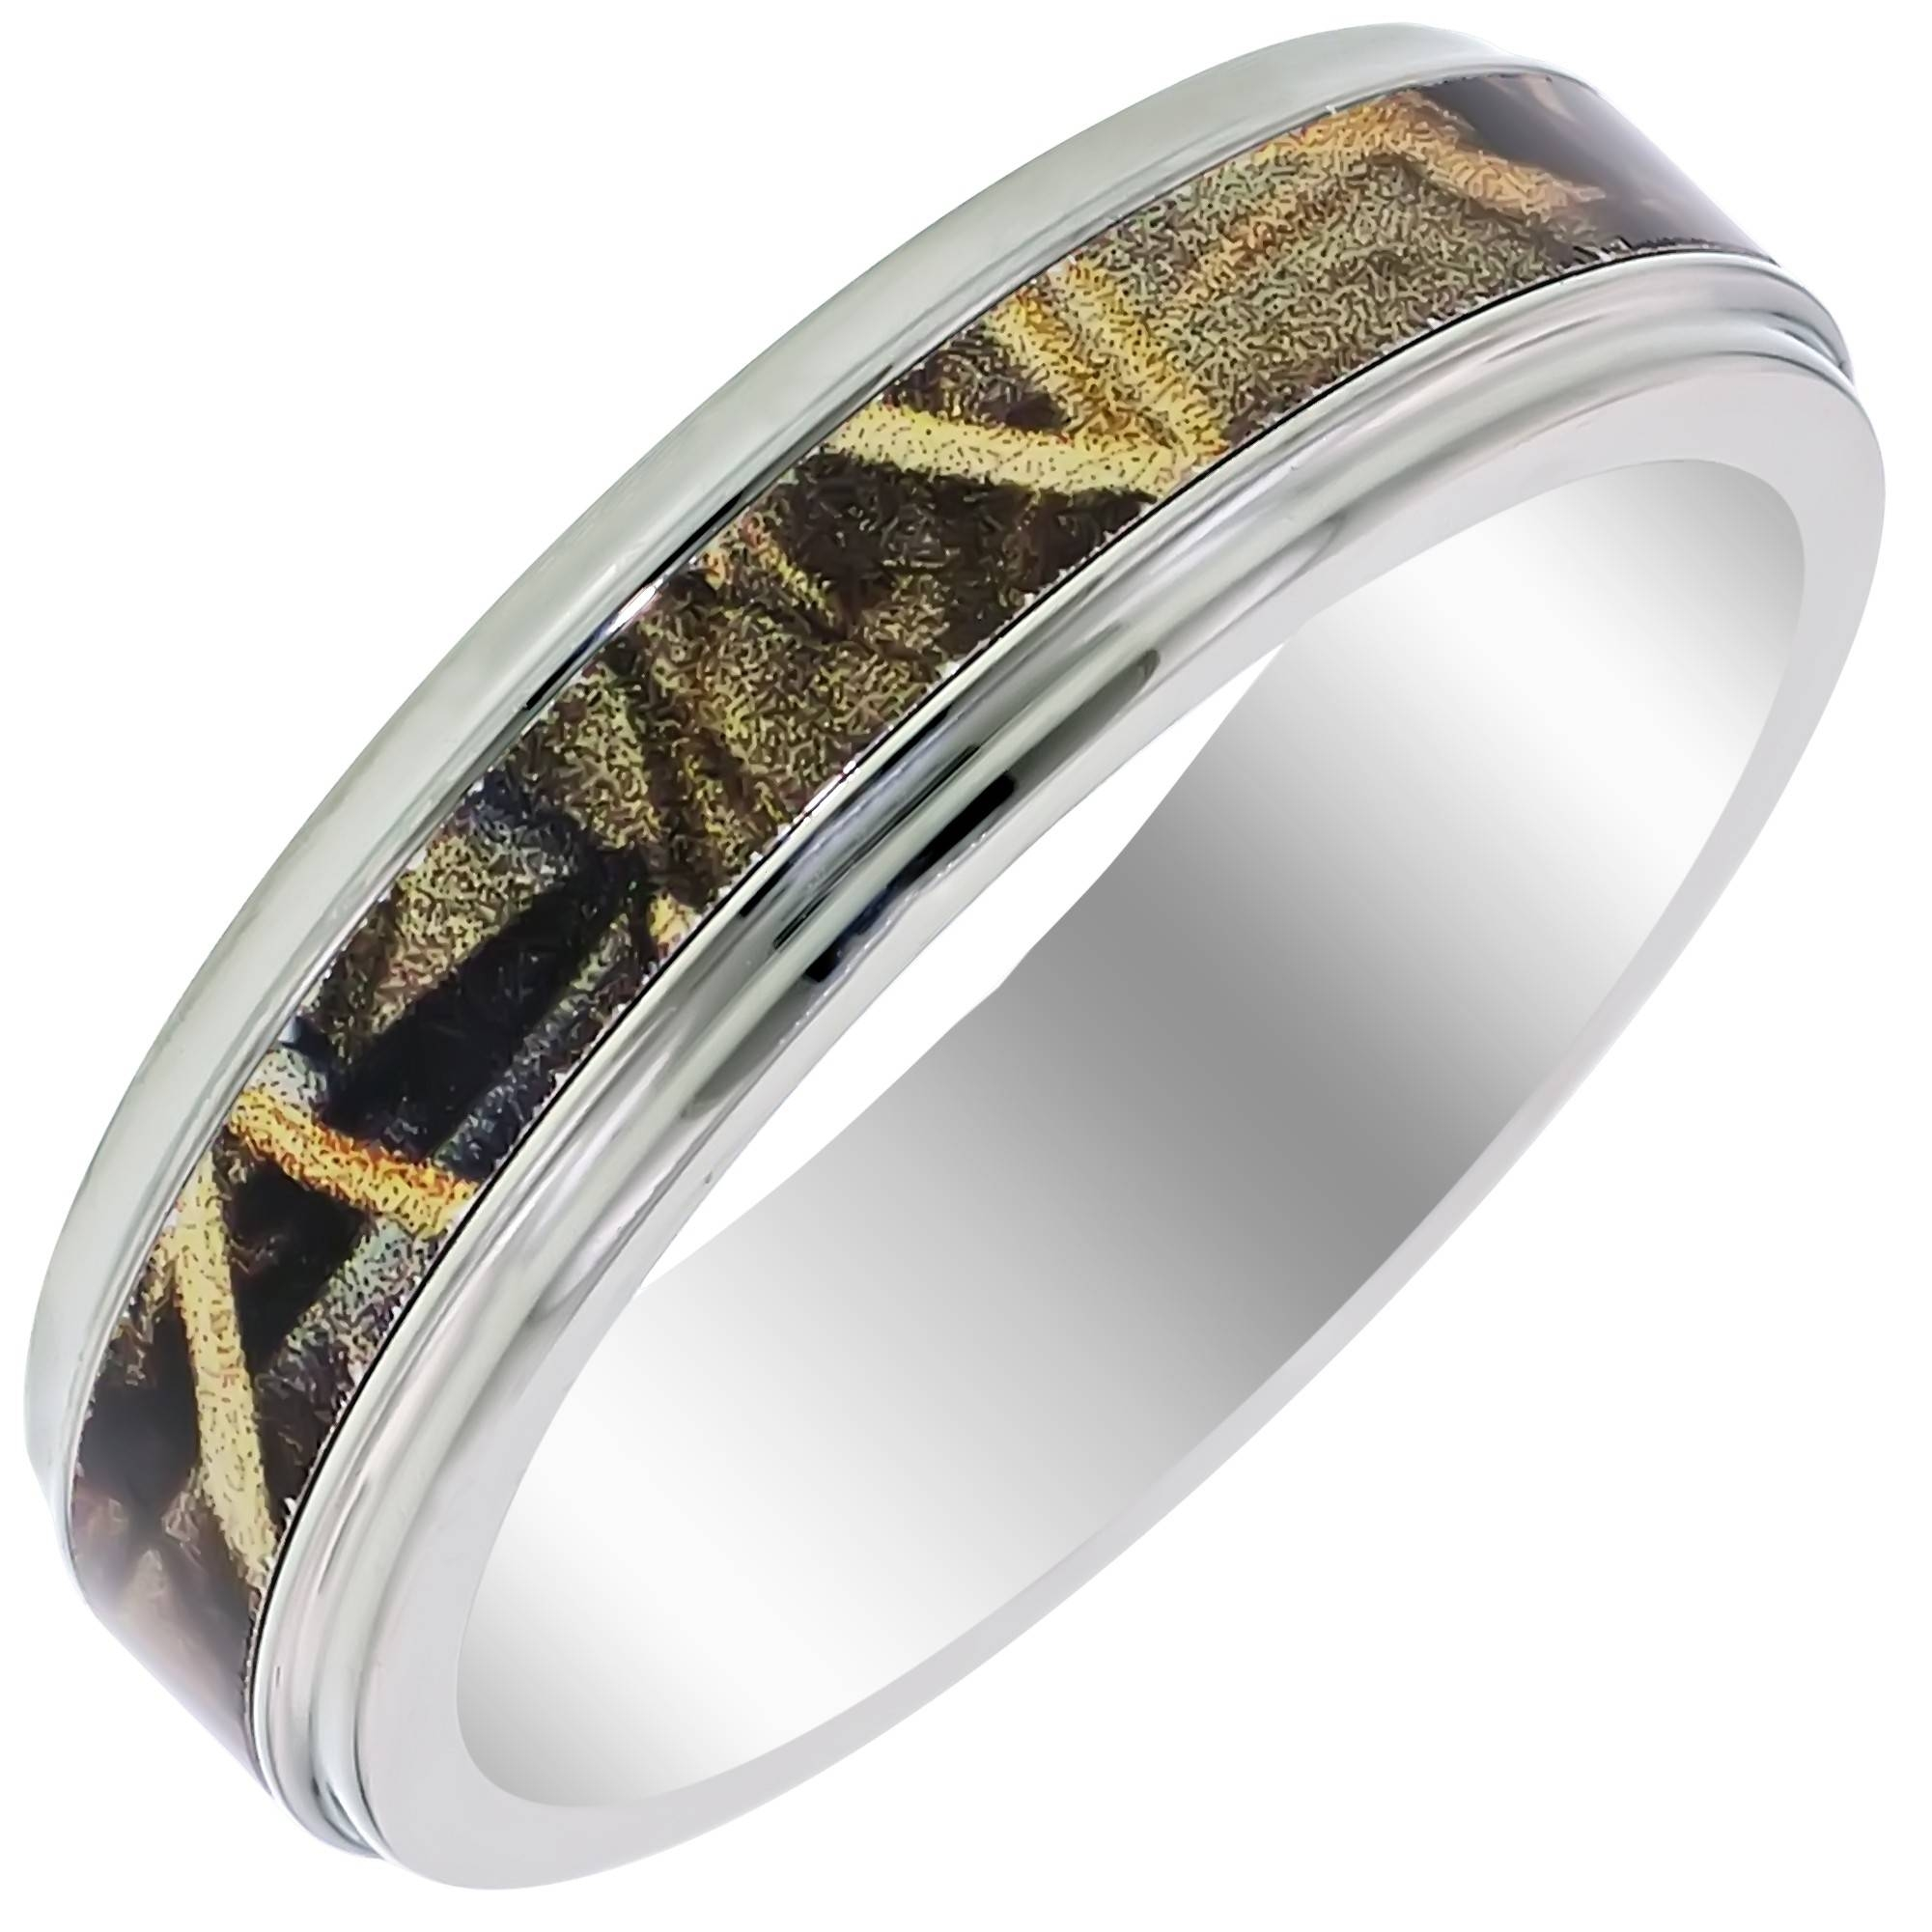 Camouflage Wedding Rings | Tomichbros Regarding Camouflage Wedding Bands For Him (View 6 of 15)